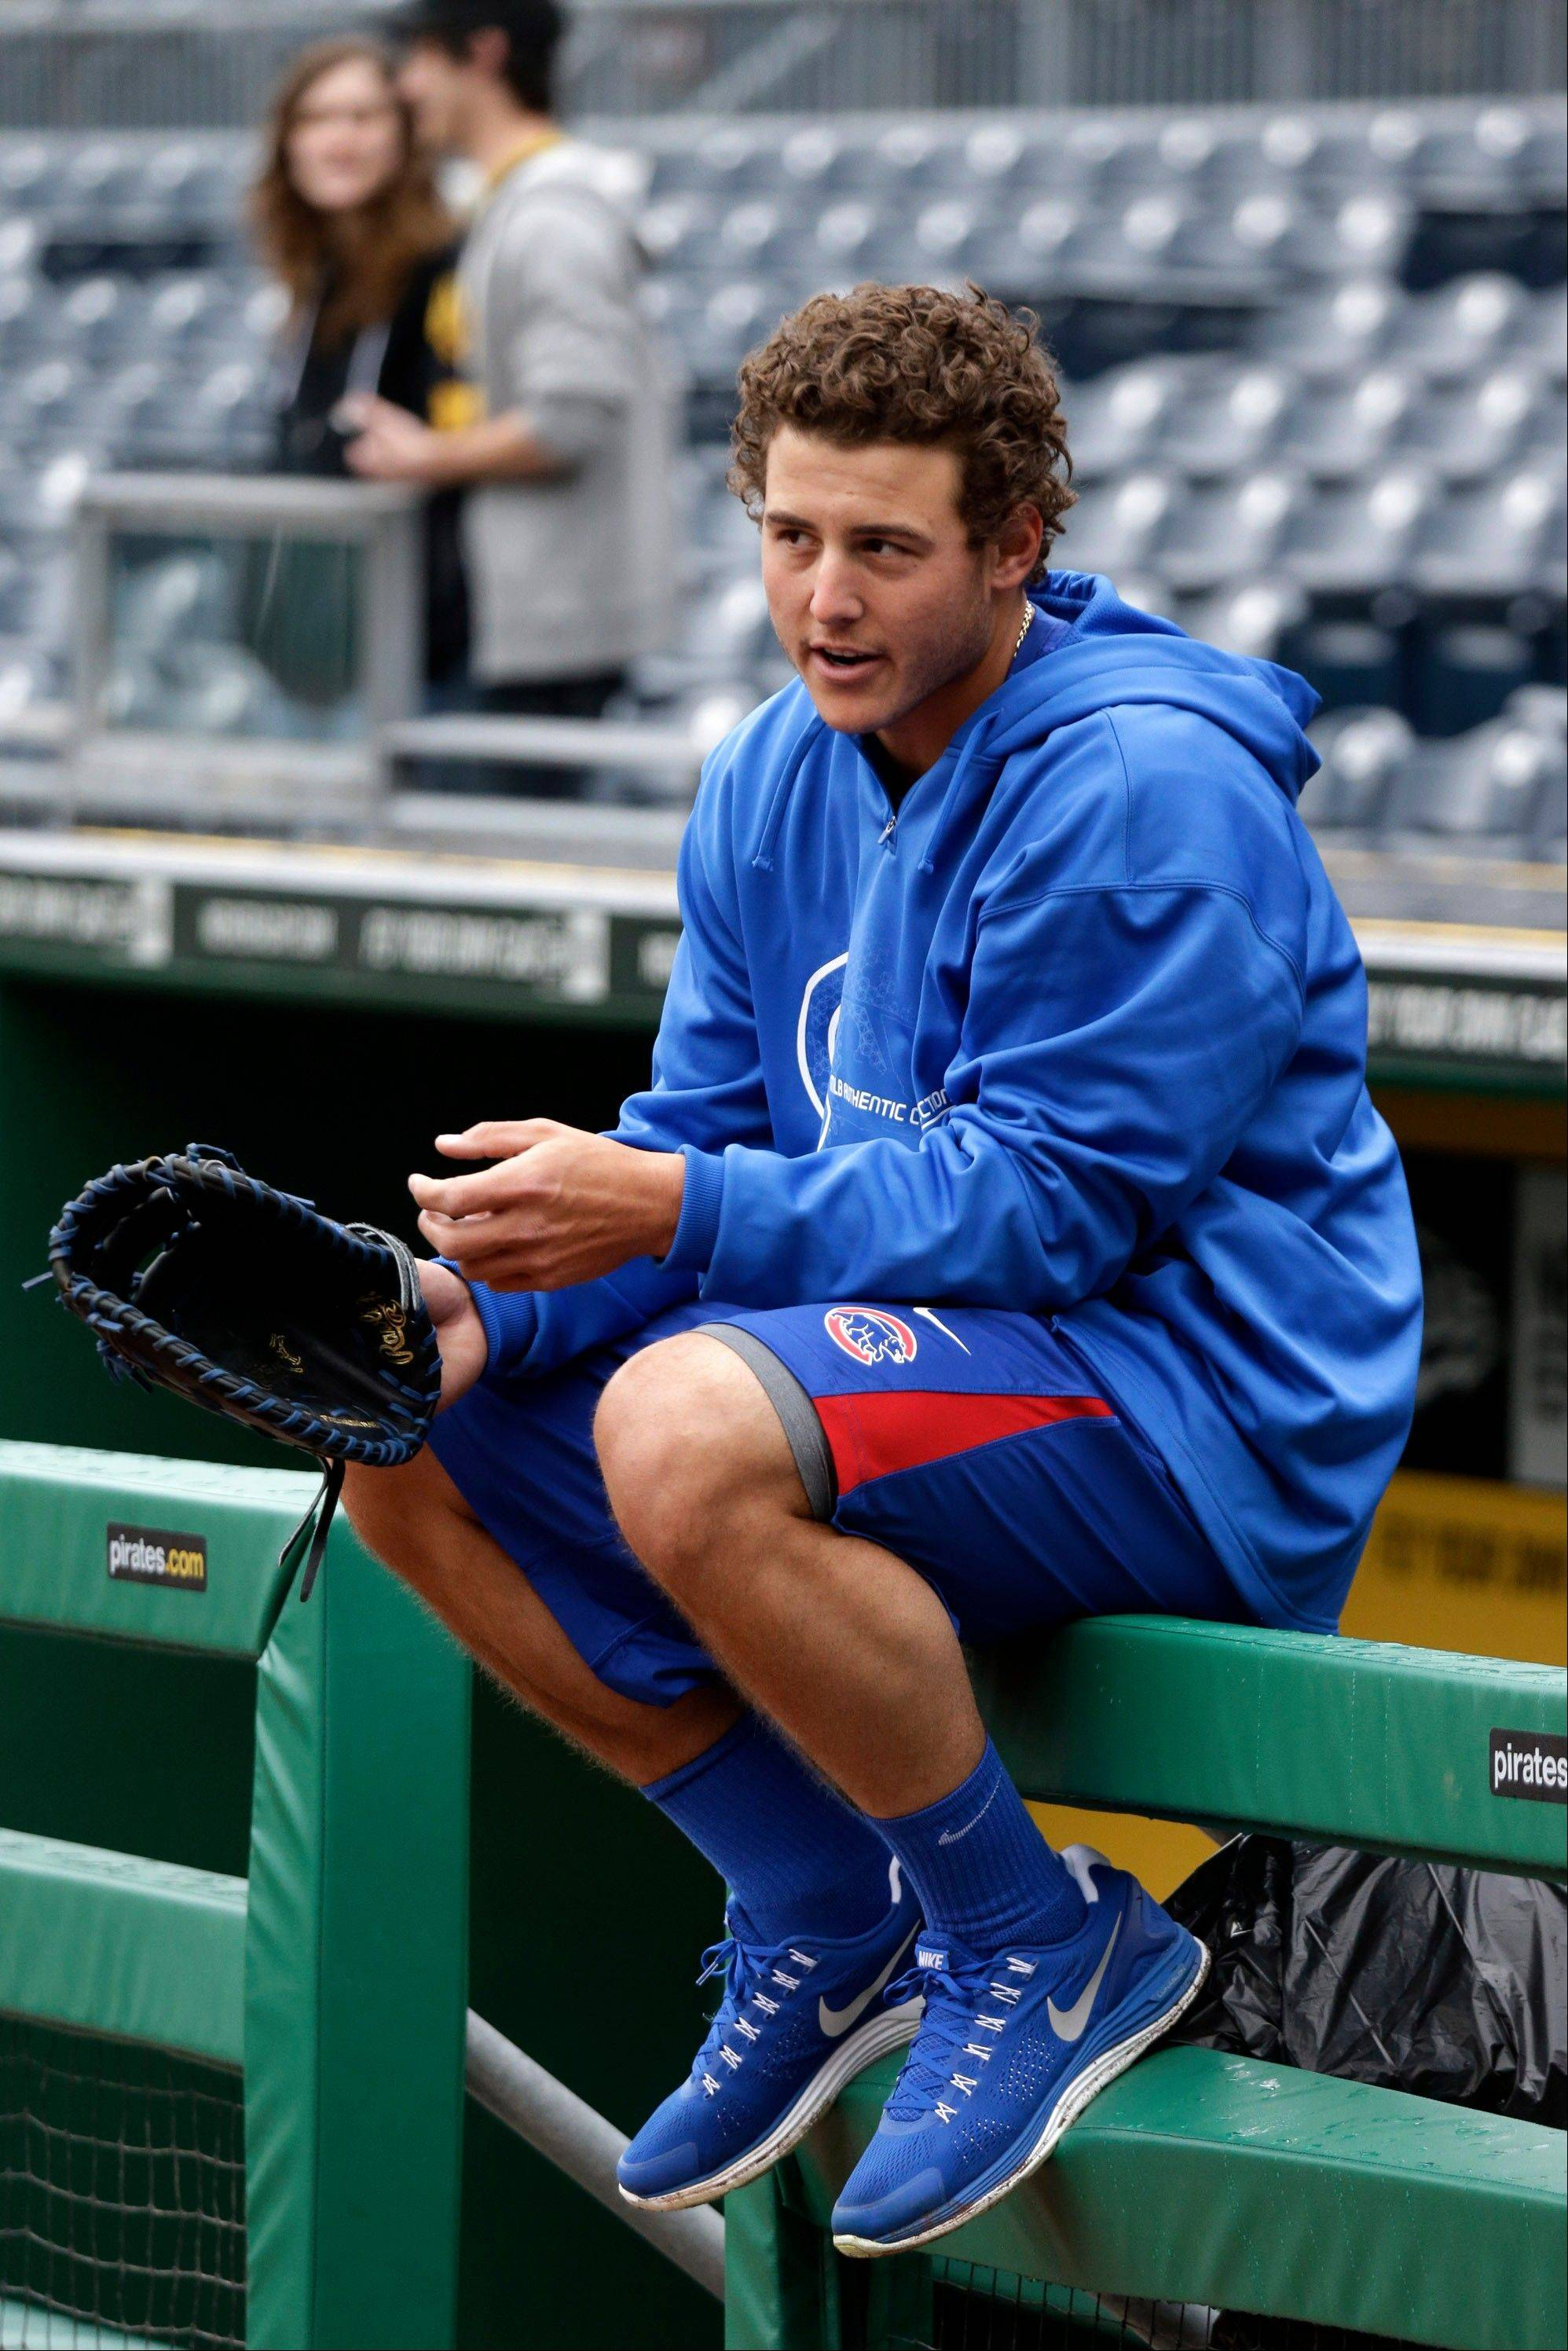 Cubs first baseman Anthony Rizzo sits on the dugout railing watching the Pittsburgh Pirates work out at PNC Park in Pittsburgh on Sunday. The two teams open their seasons Monday.